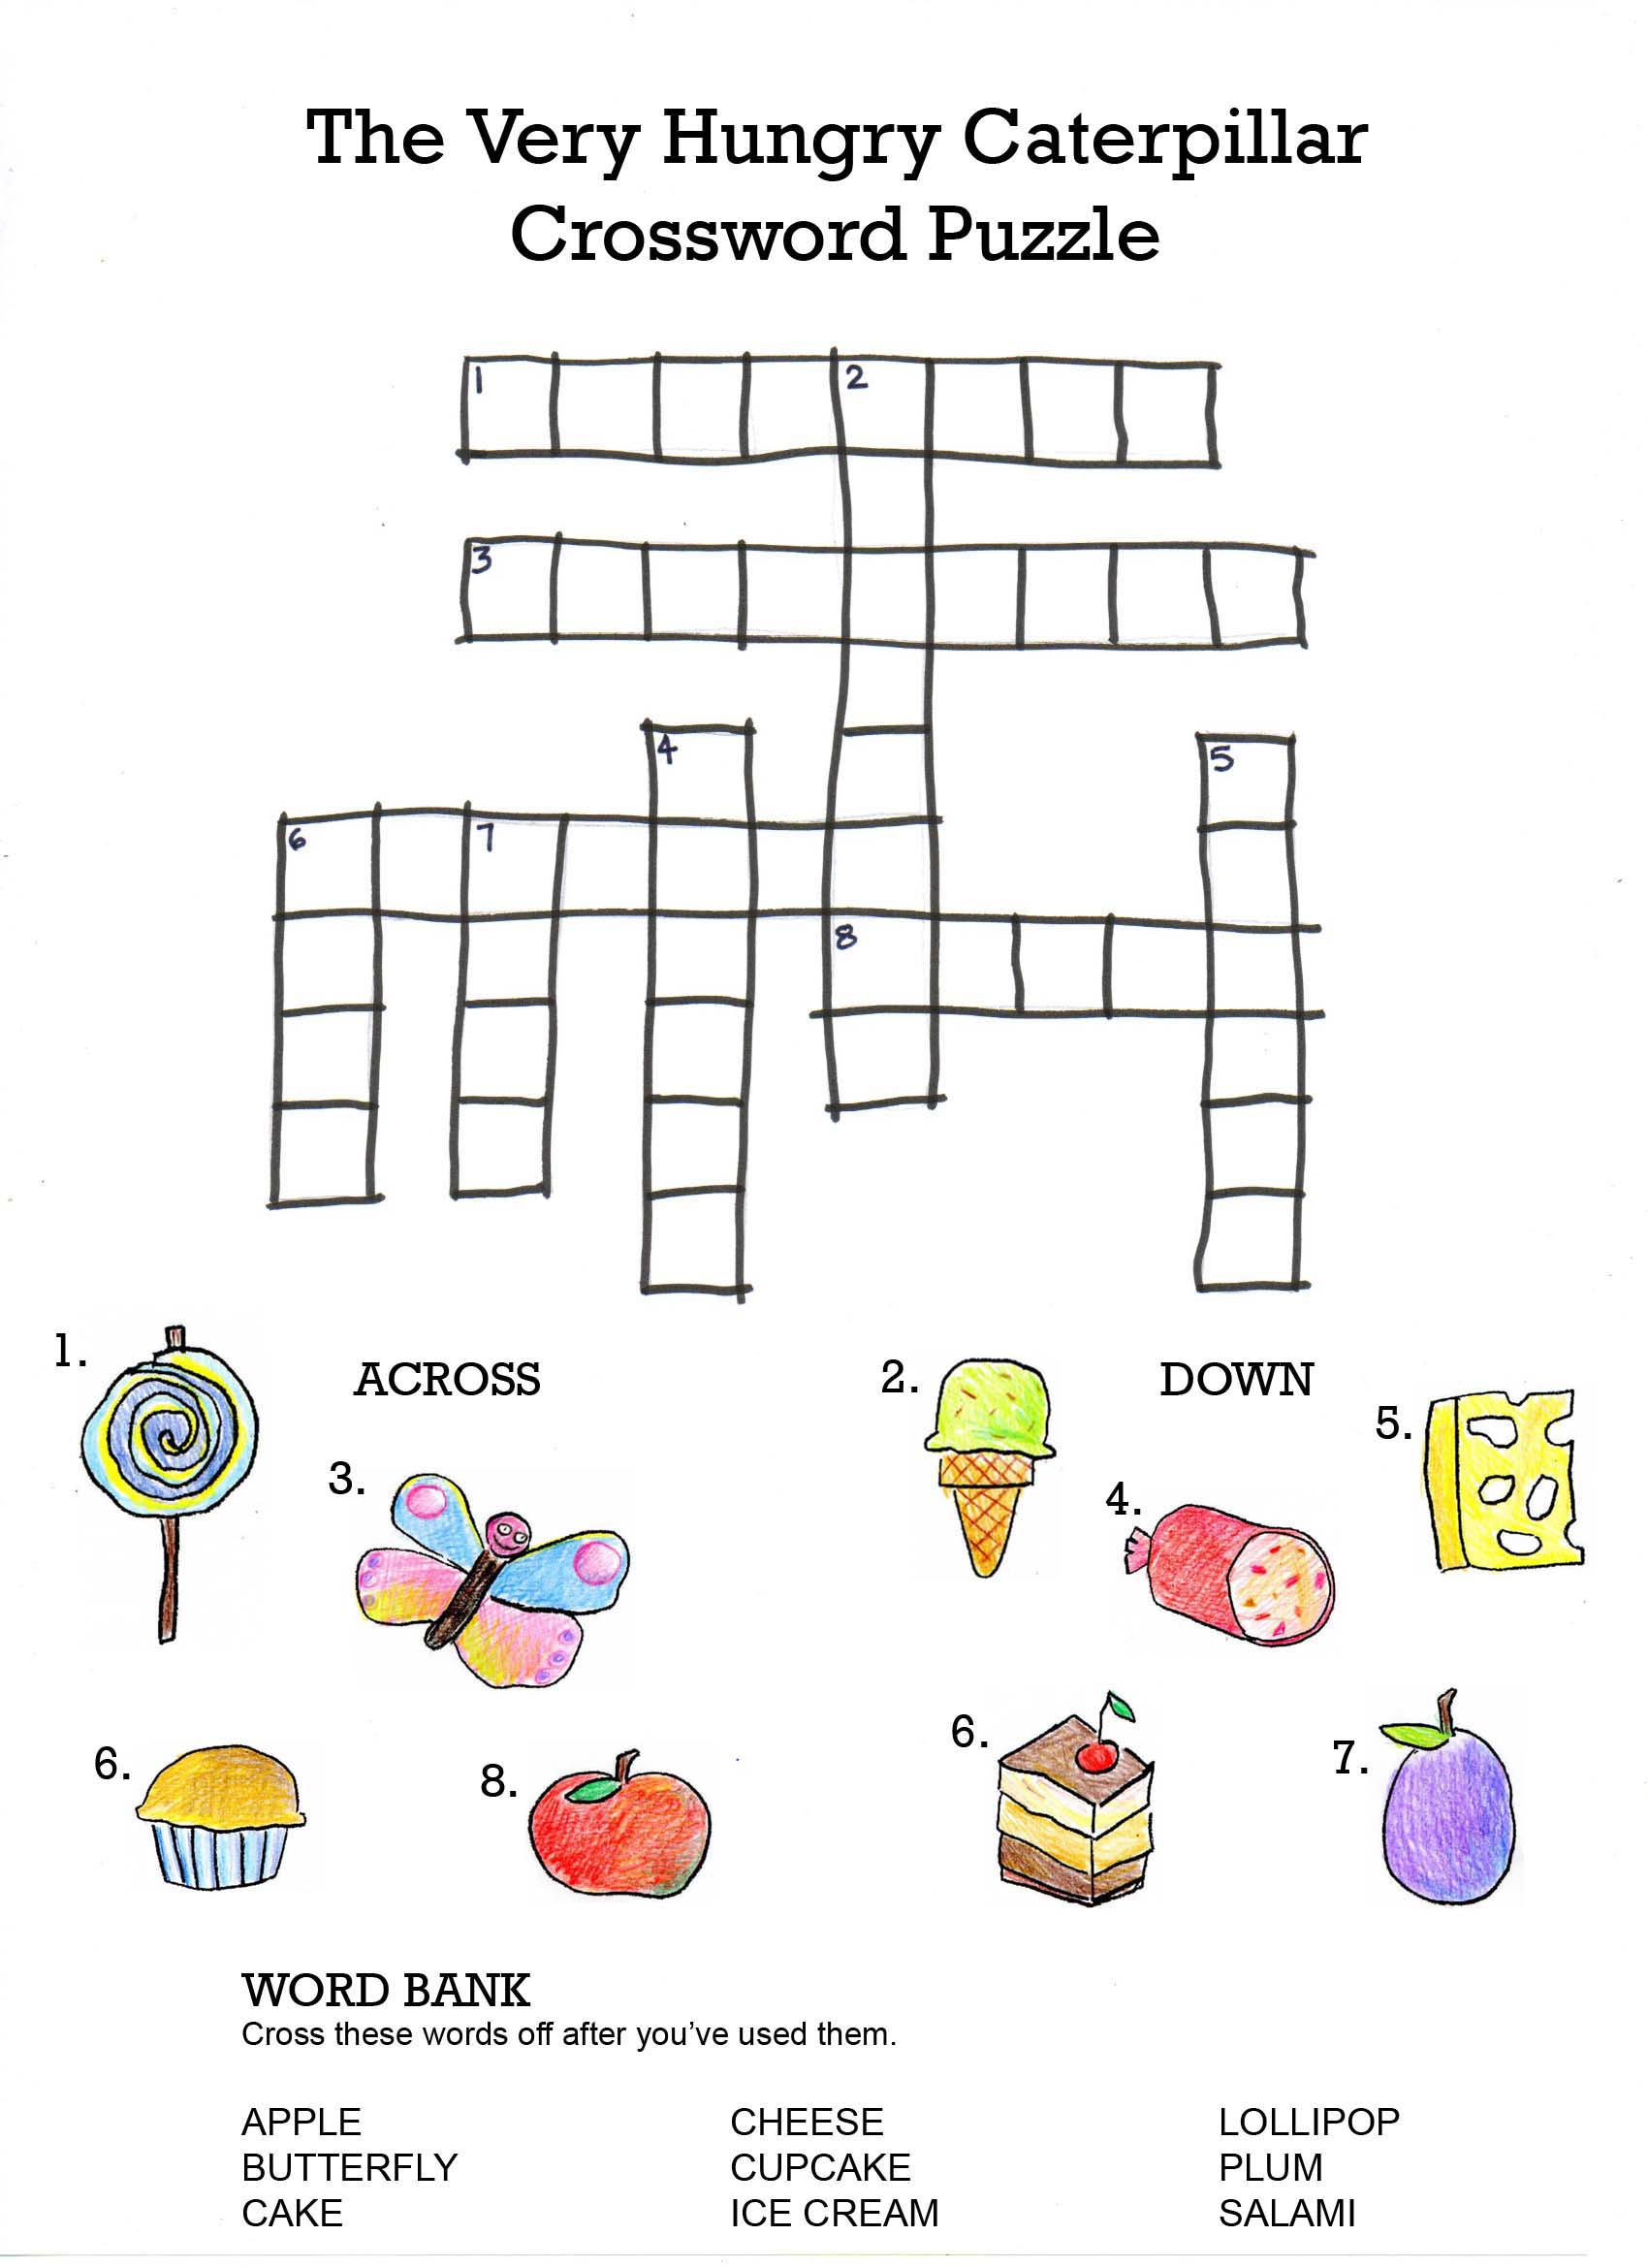 The Very Hungry Caterpillar Crossword on the very hungry caterpillar days of week counting